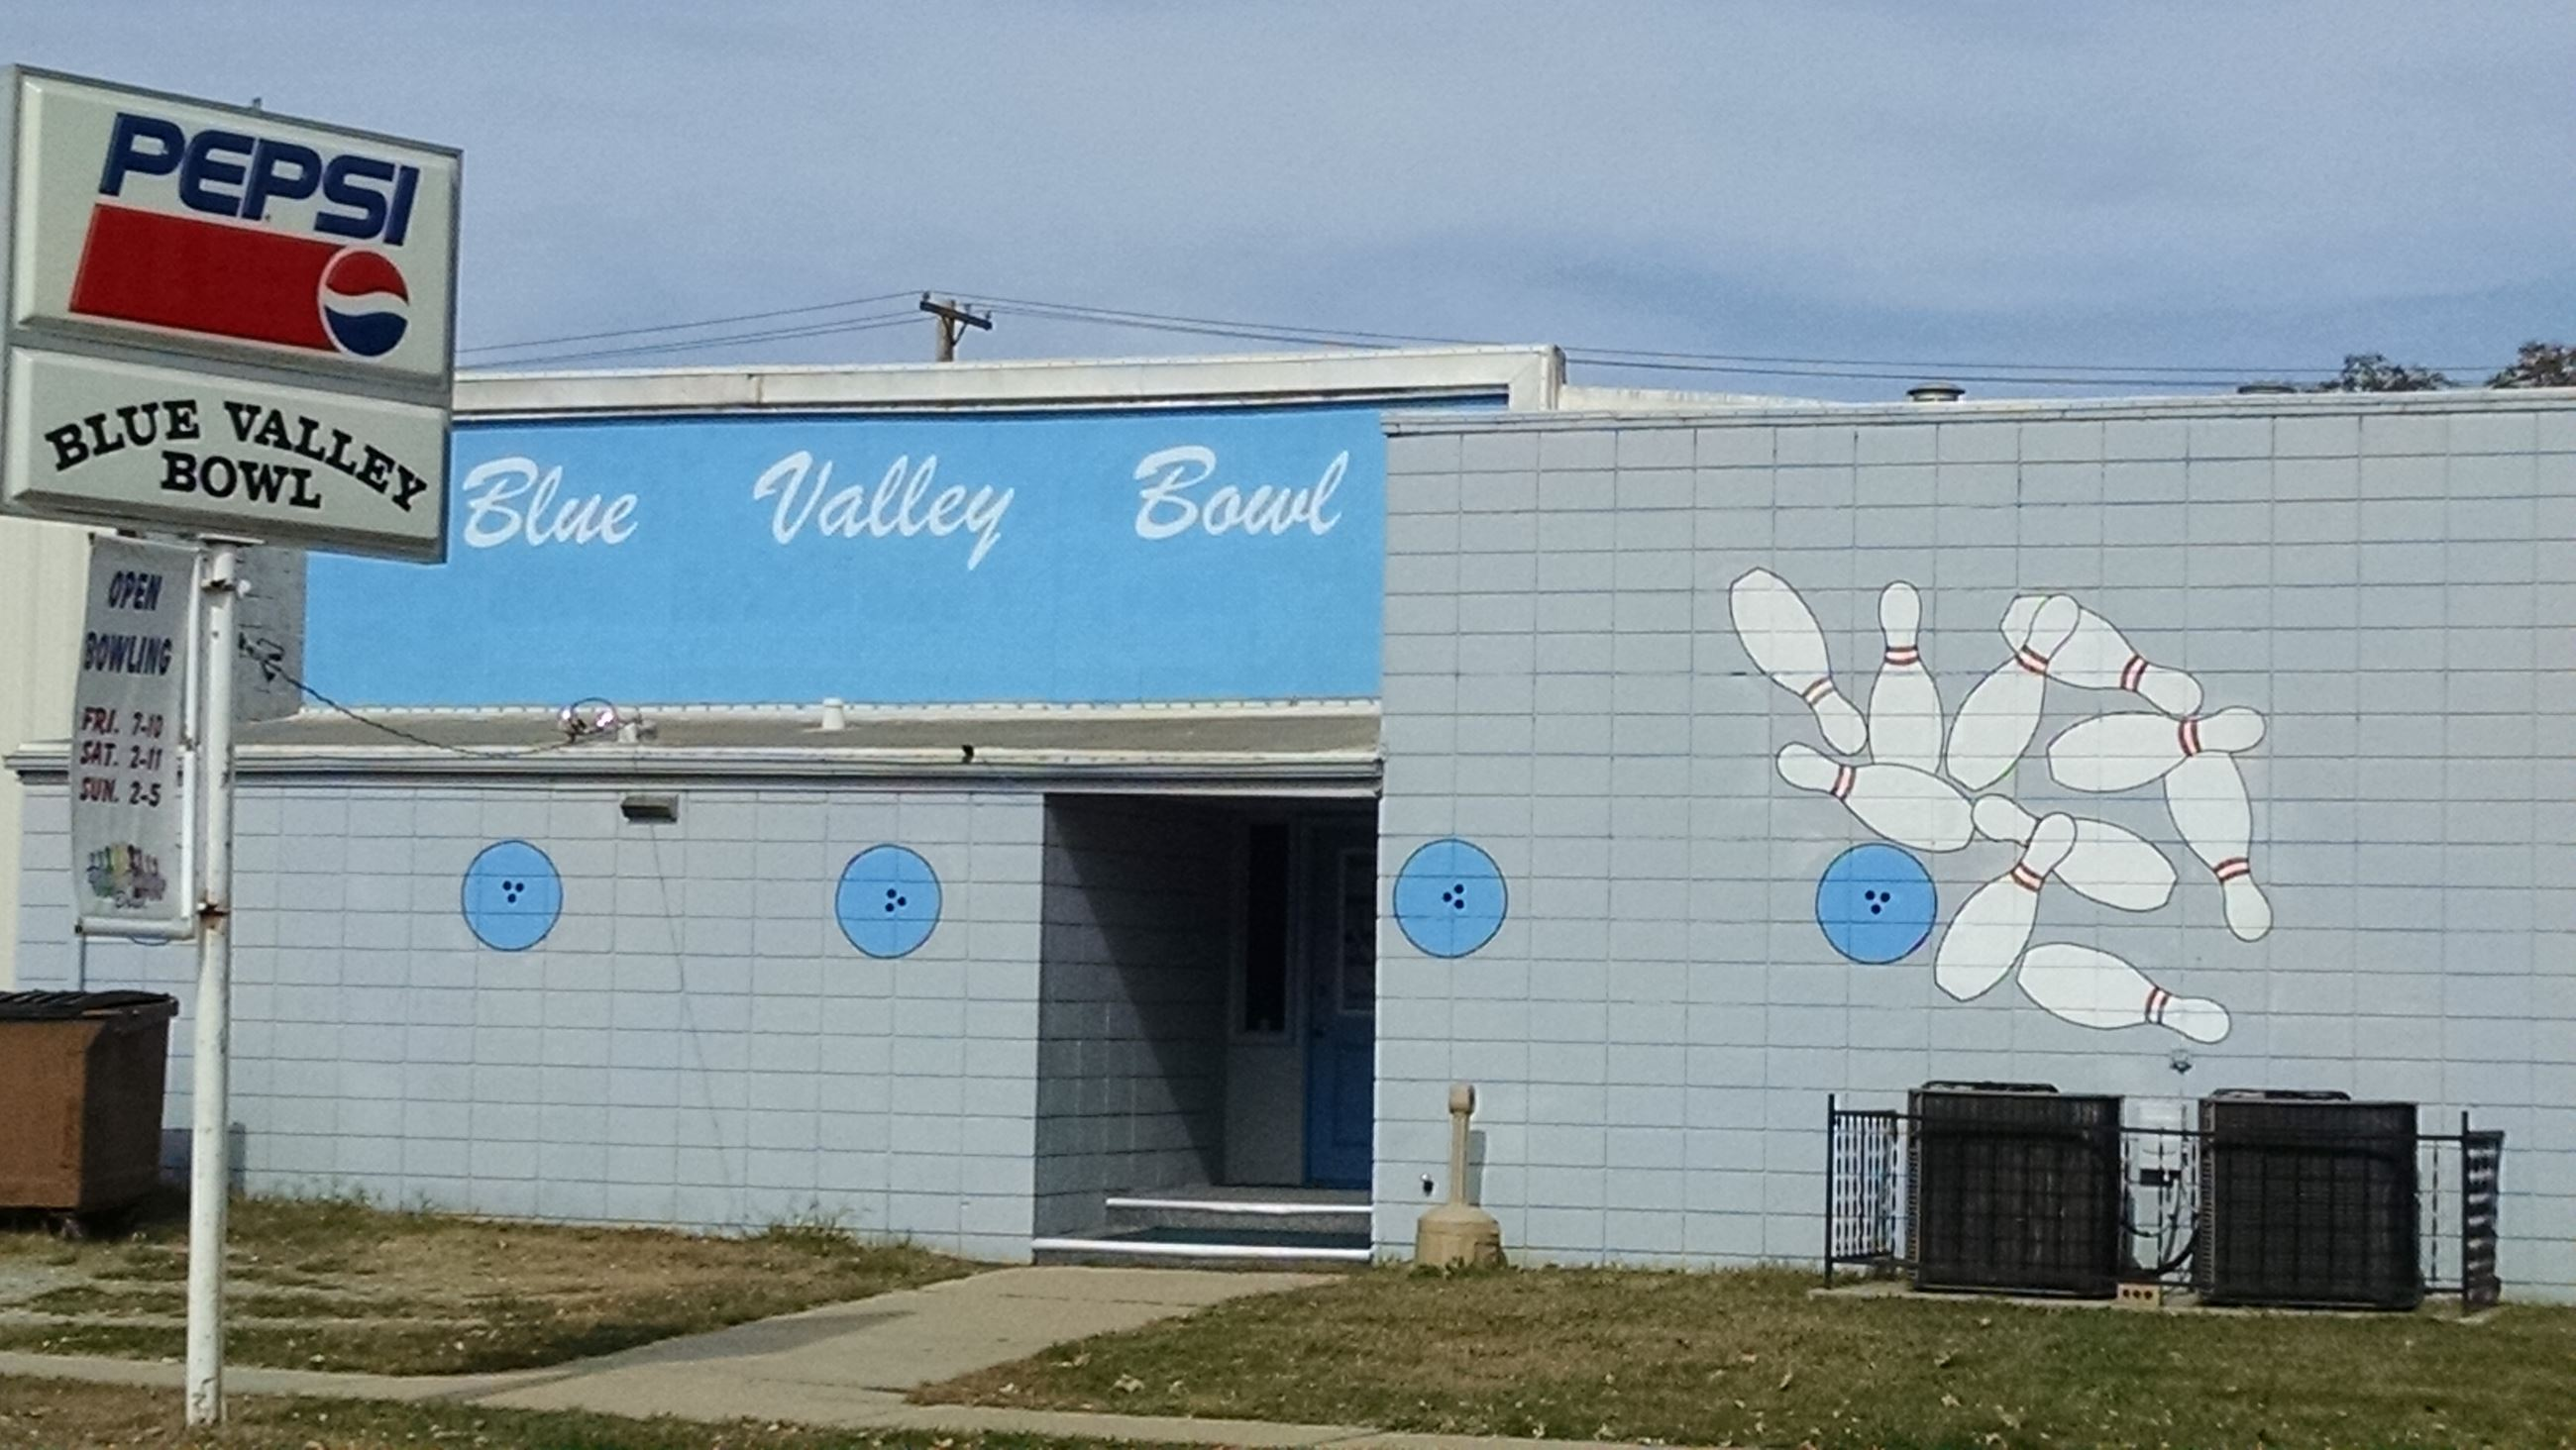 Blue Valley Bowl